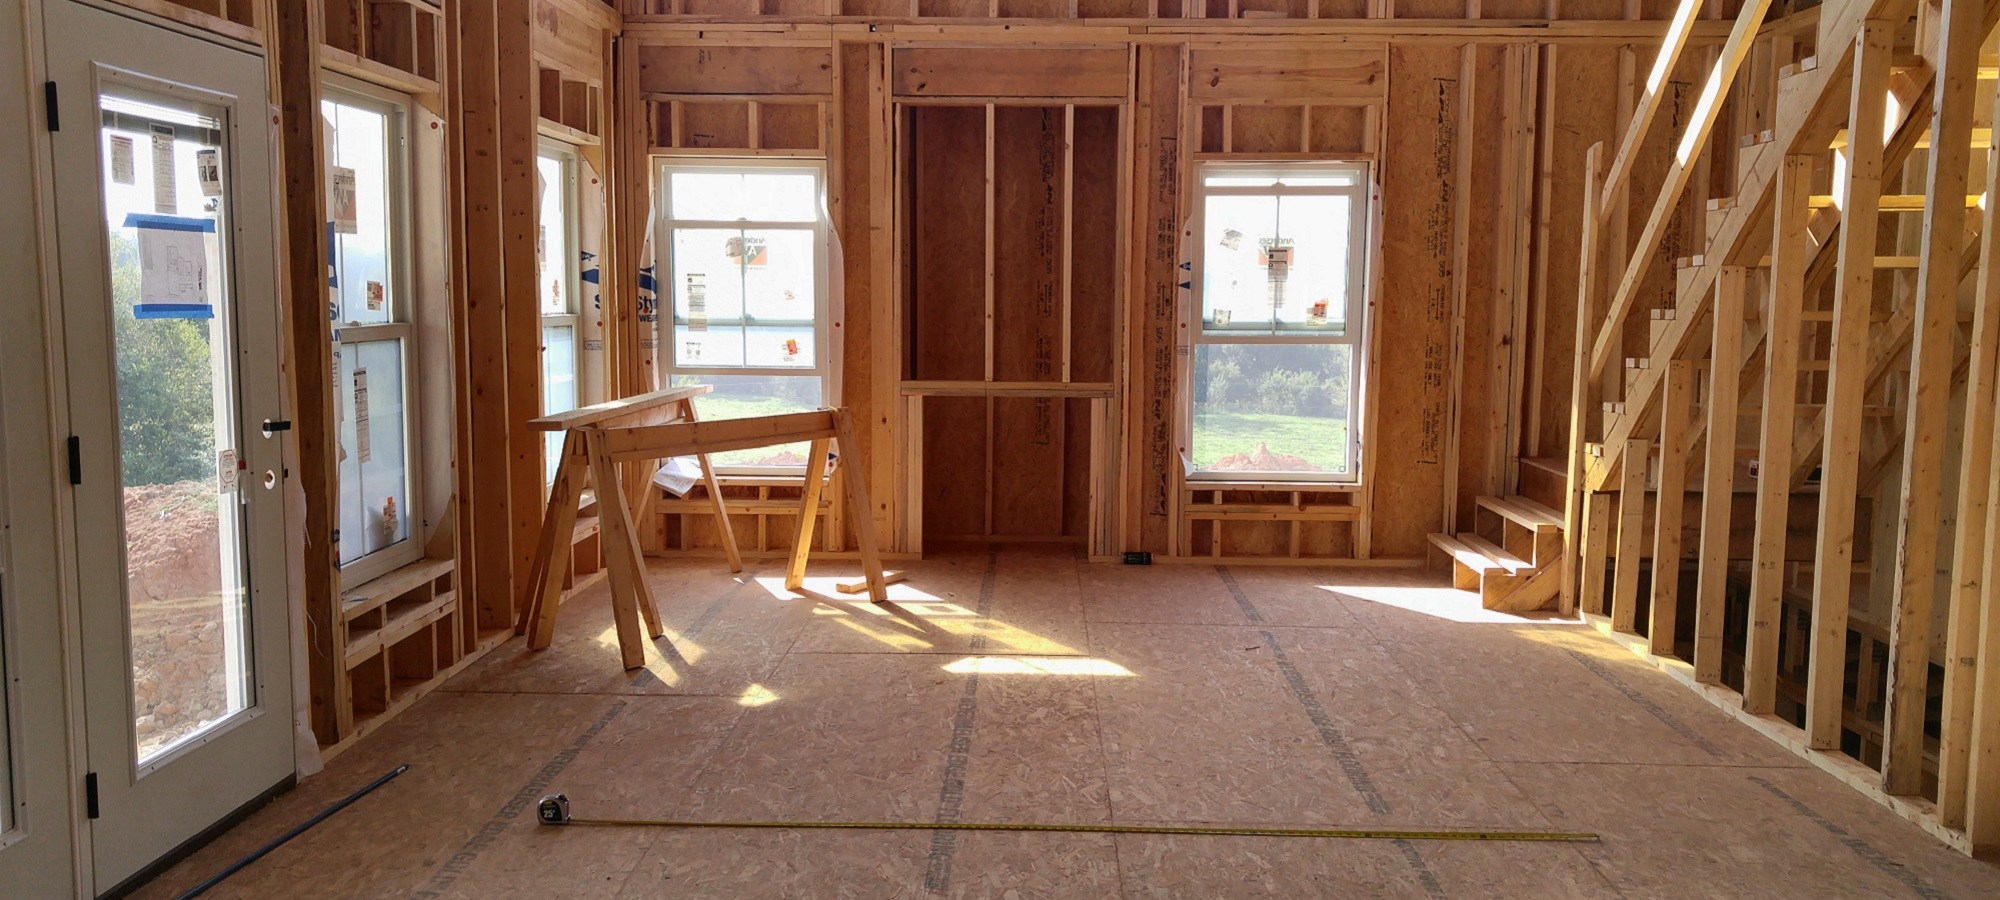 custom house interior framing